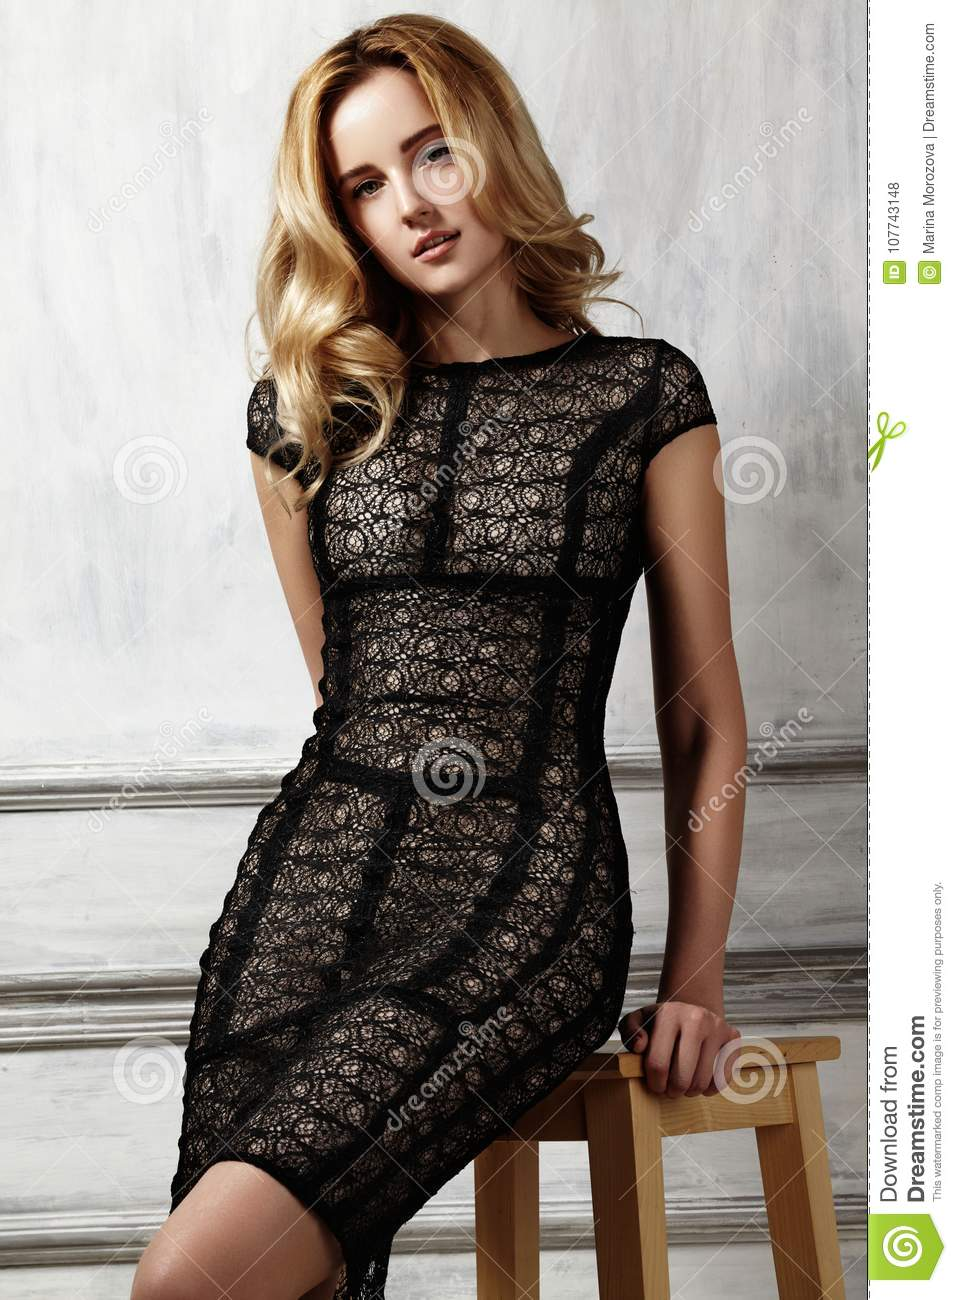 https://thumbs.dreamstime.com/z/elegant-fashionable-woman-black-dress-evening-style-beautiful-volume-curly-hairstyle-shiny-hair-perfect-sexy-body-elegant-107743148.jpg